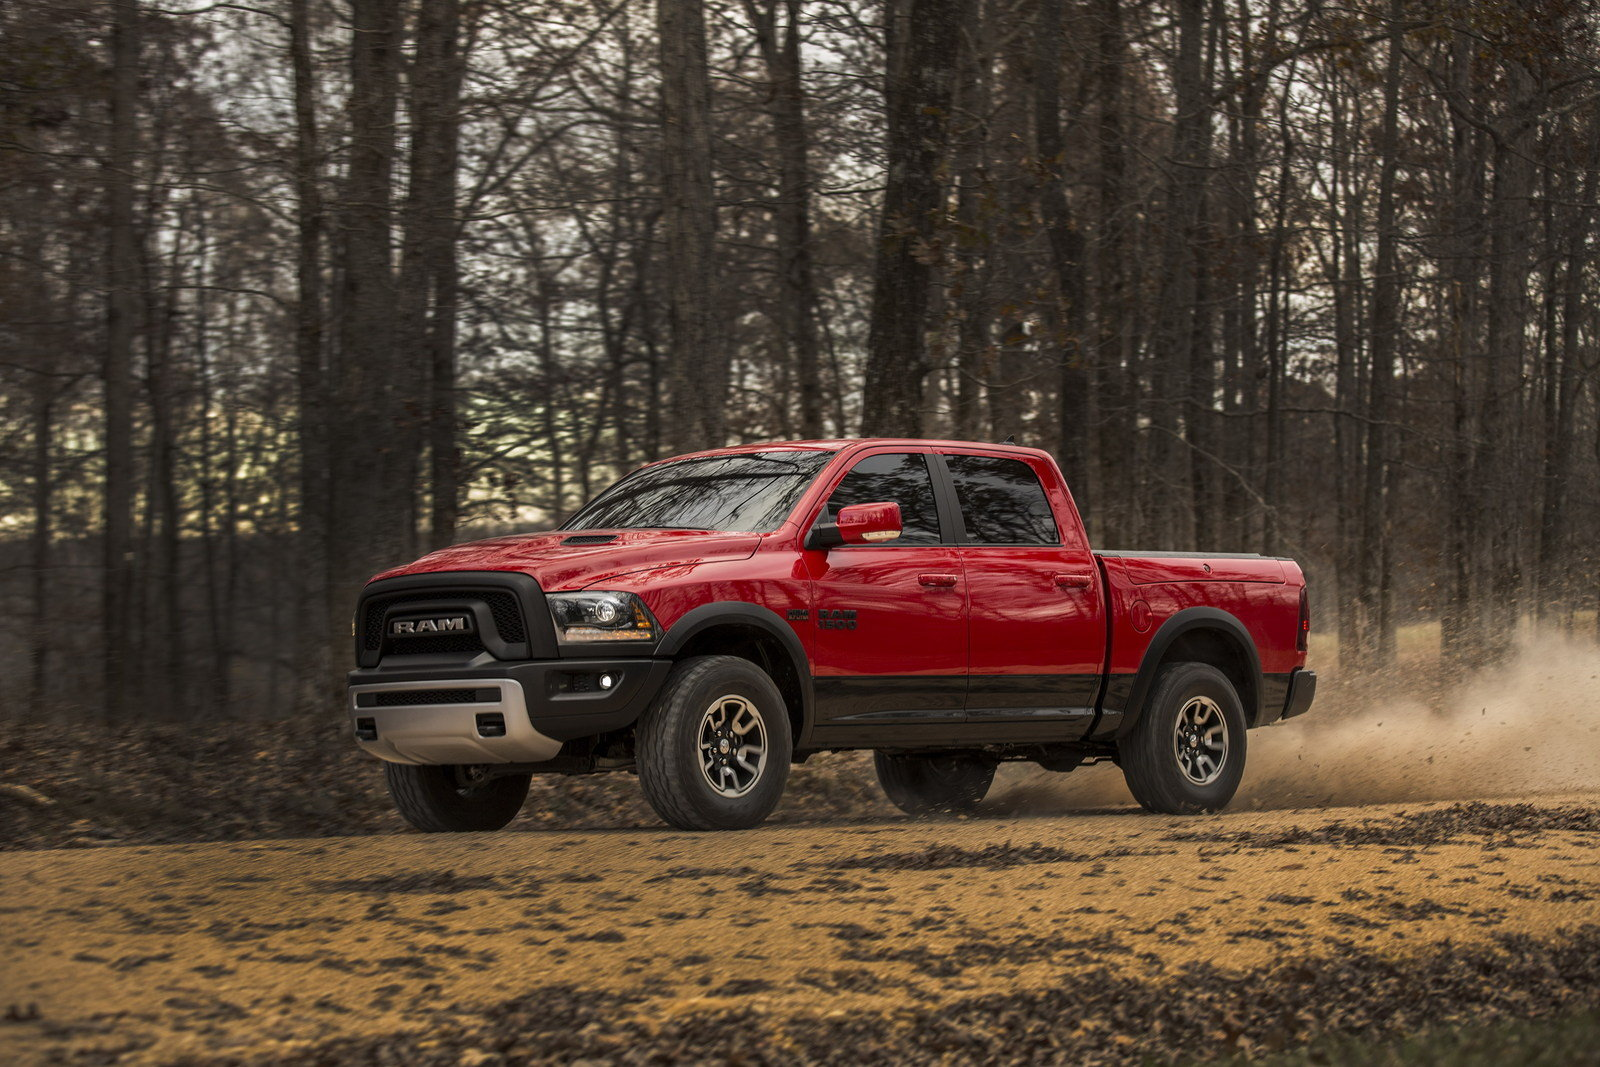 2015 ram 1500 rebel picture 610877 truck review top speed. Black Bedroom Furniture Sets. Home Design Ideas